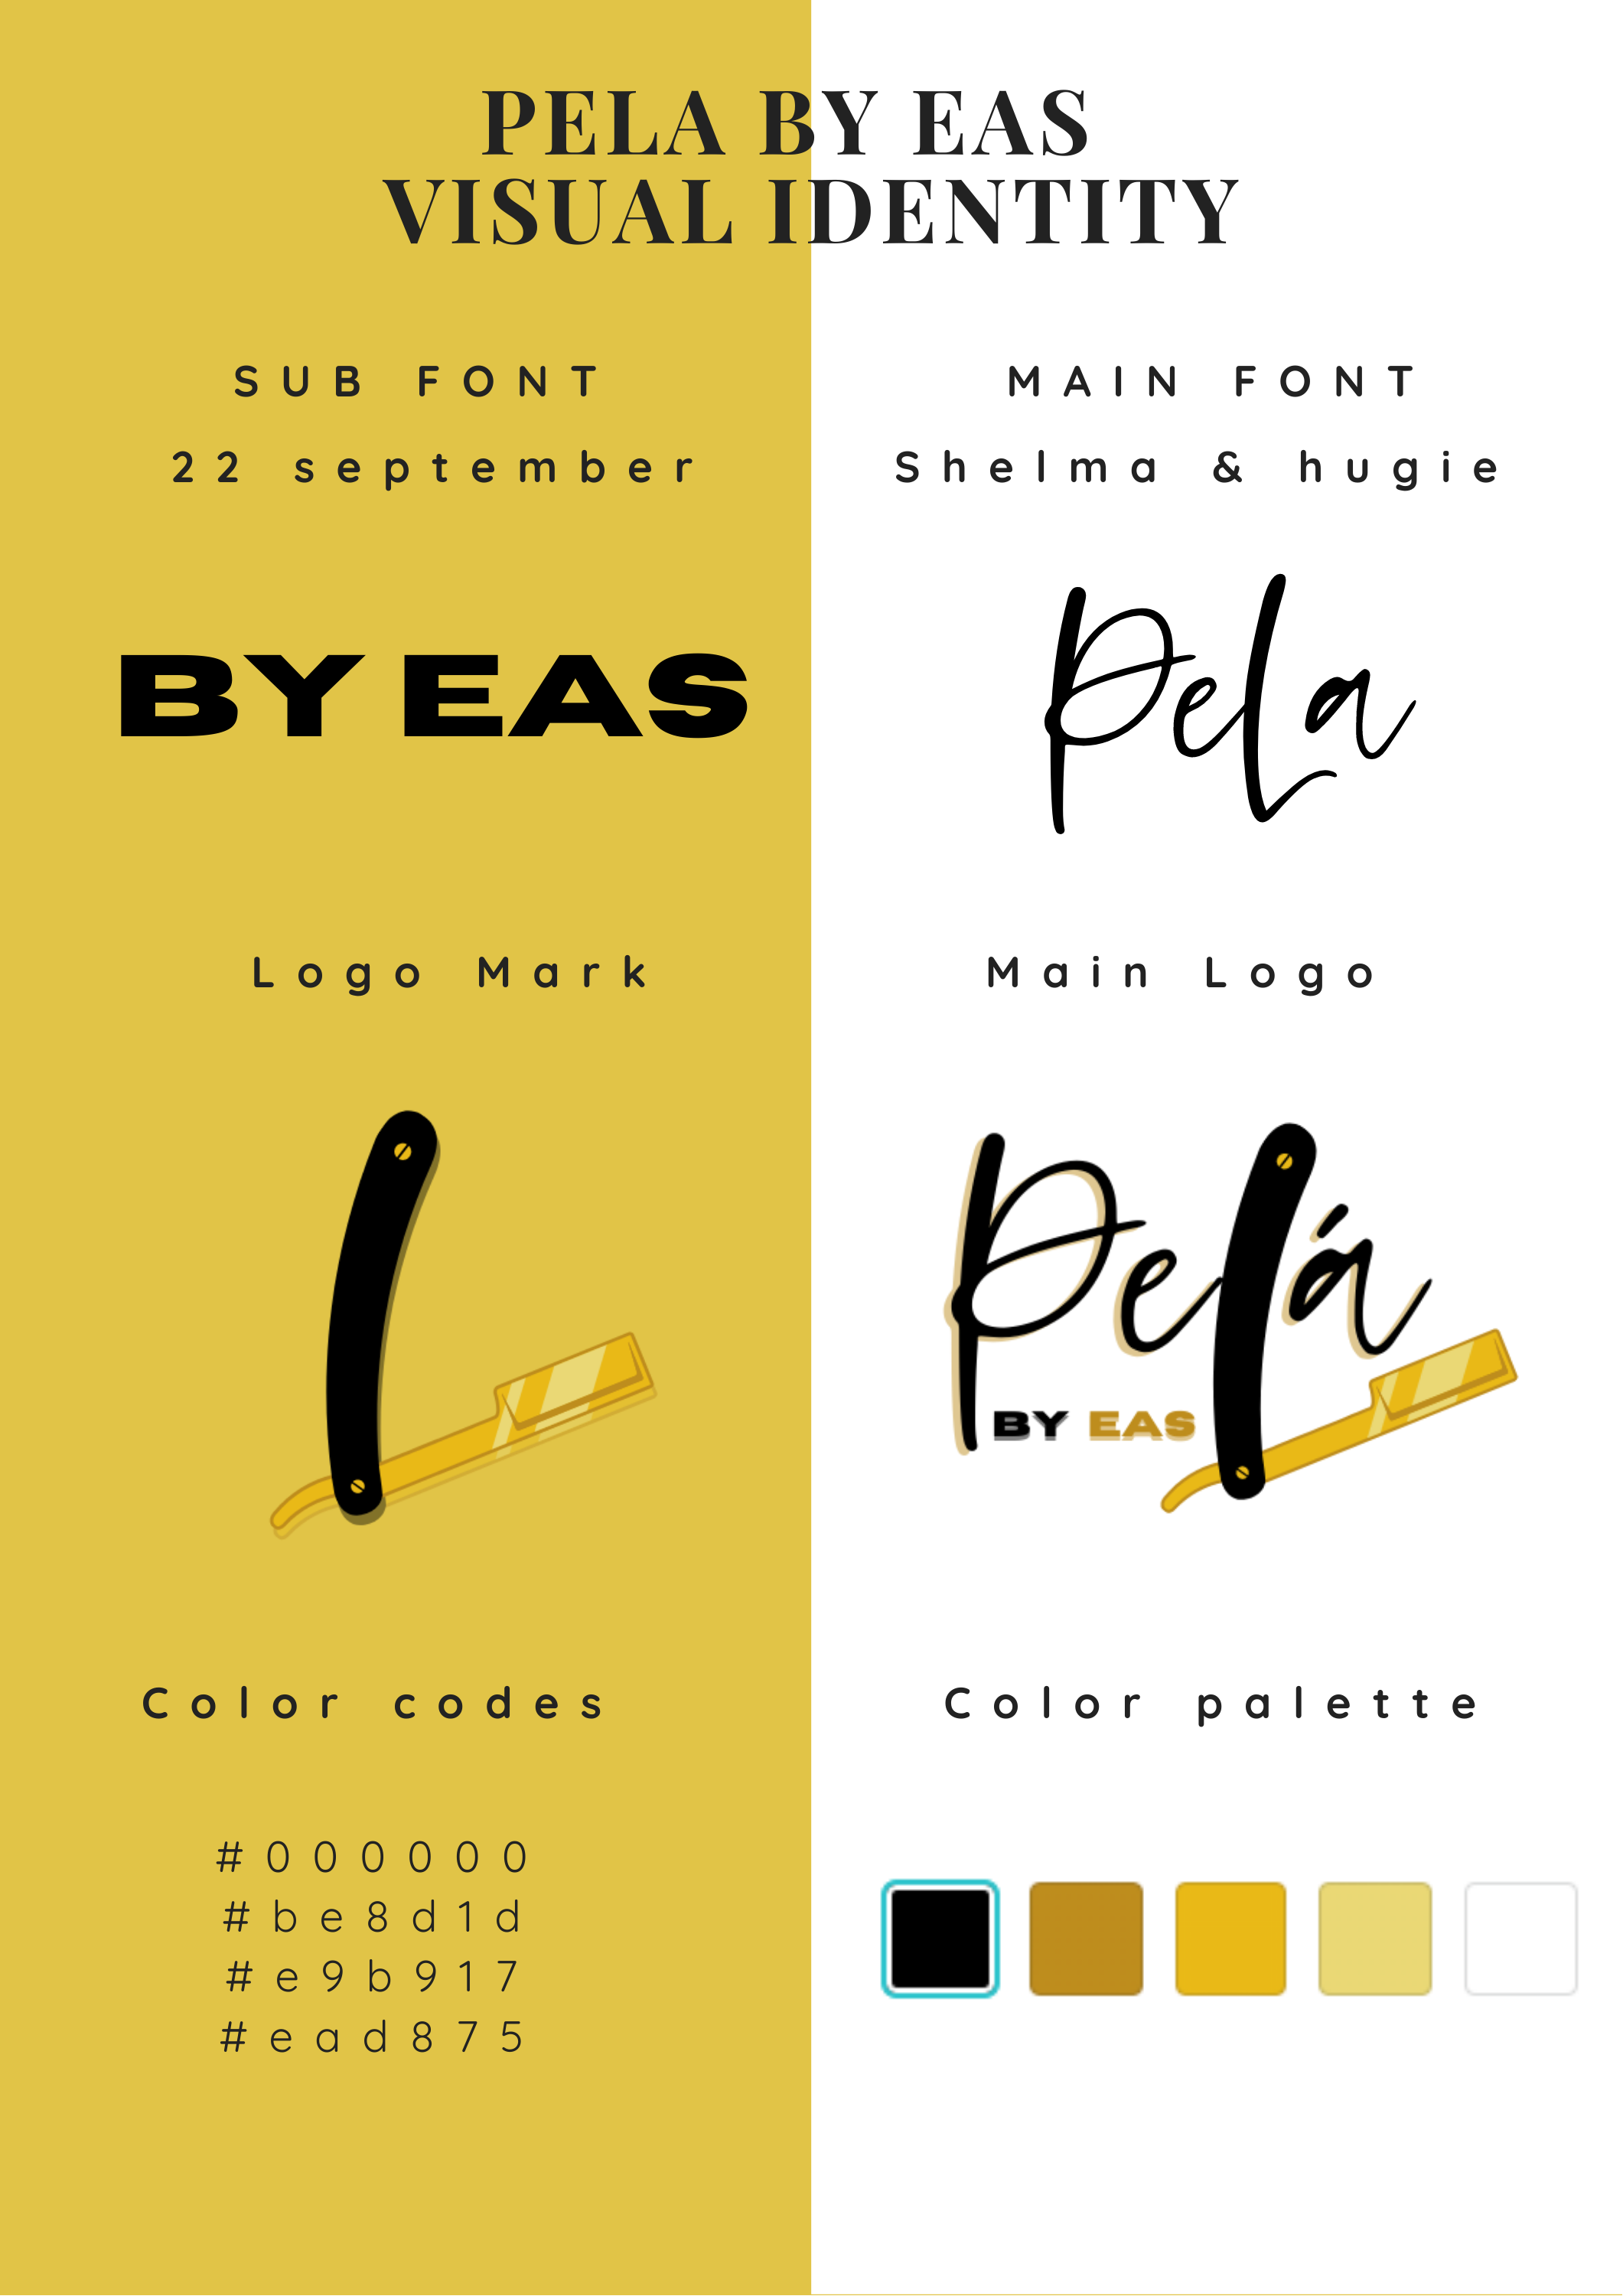 PELA BY EAS VISUAL BRAND GUIDE.png